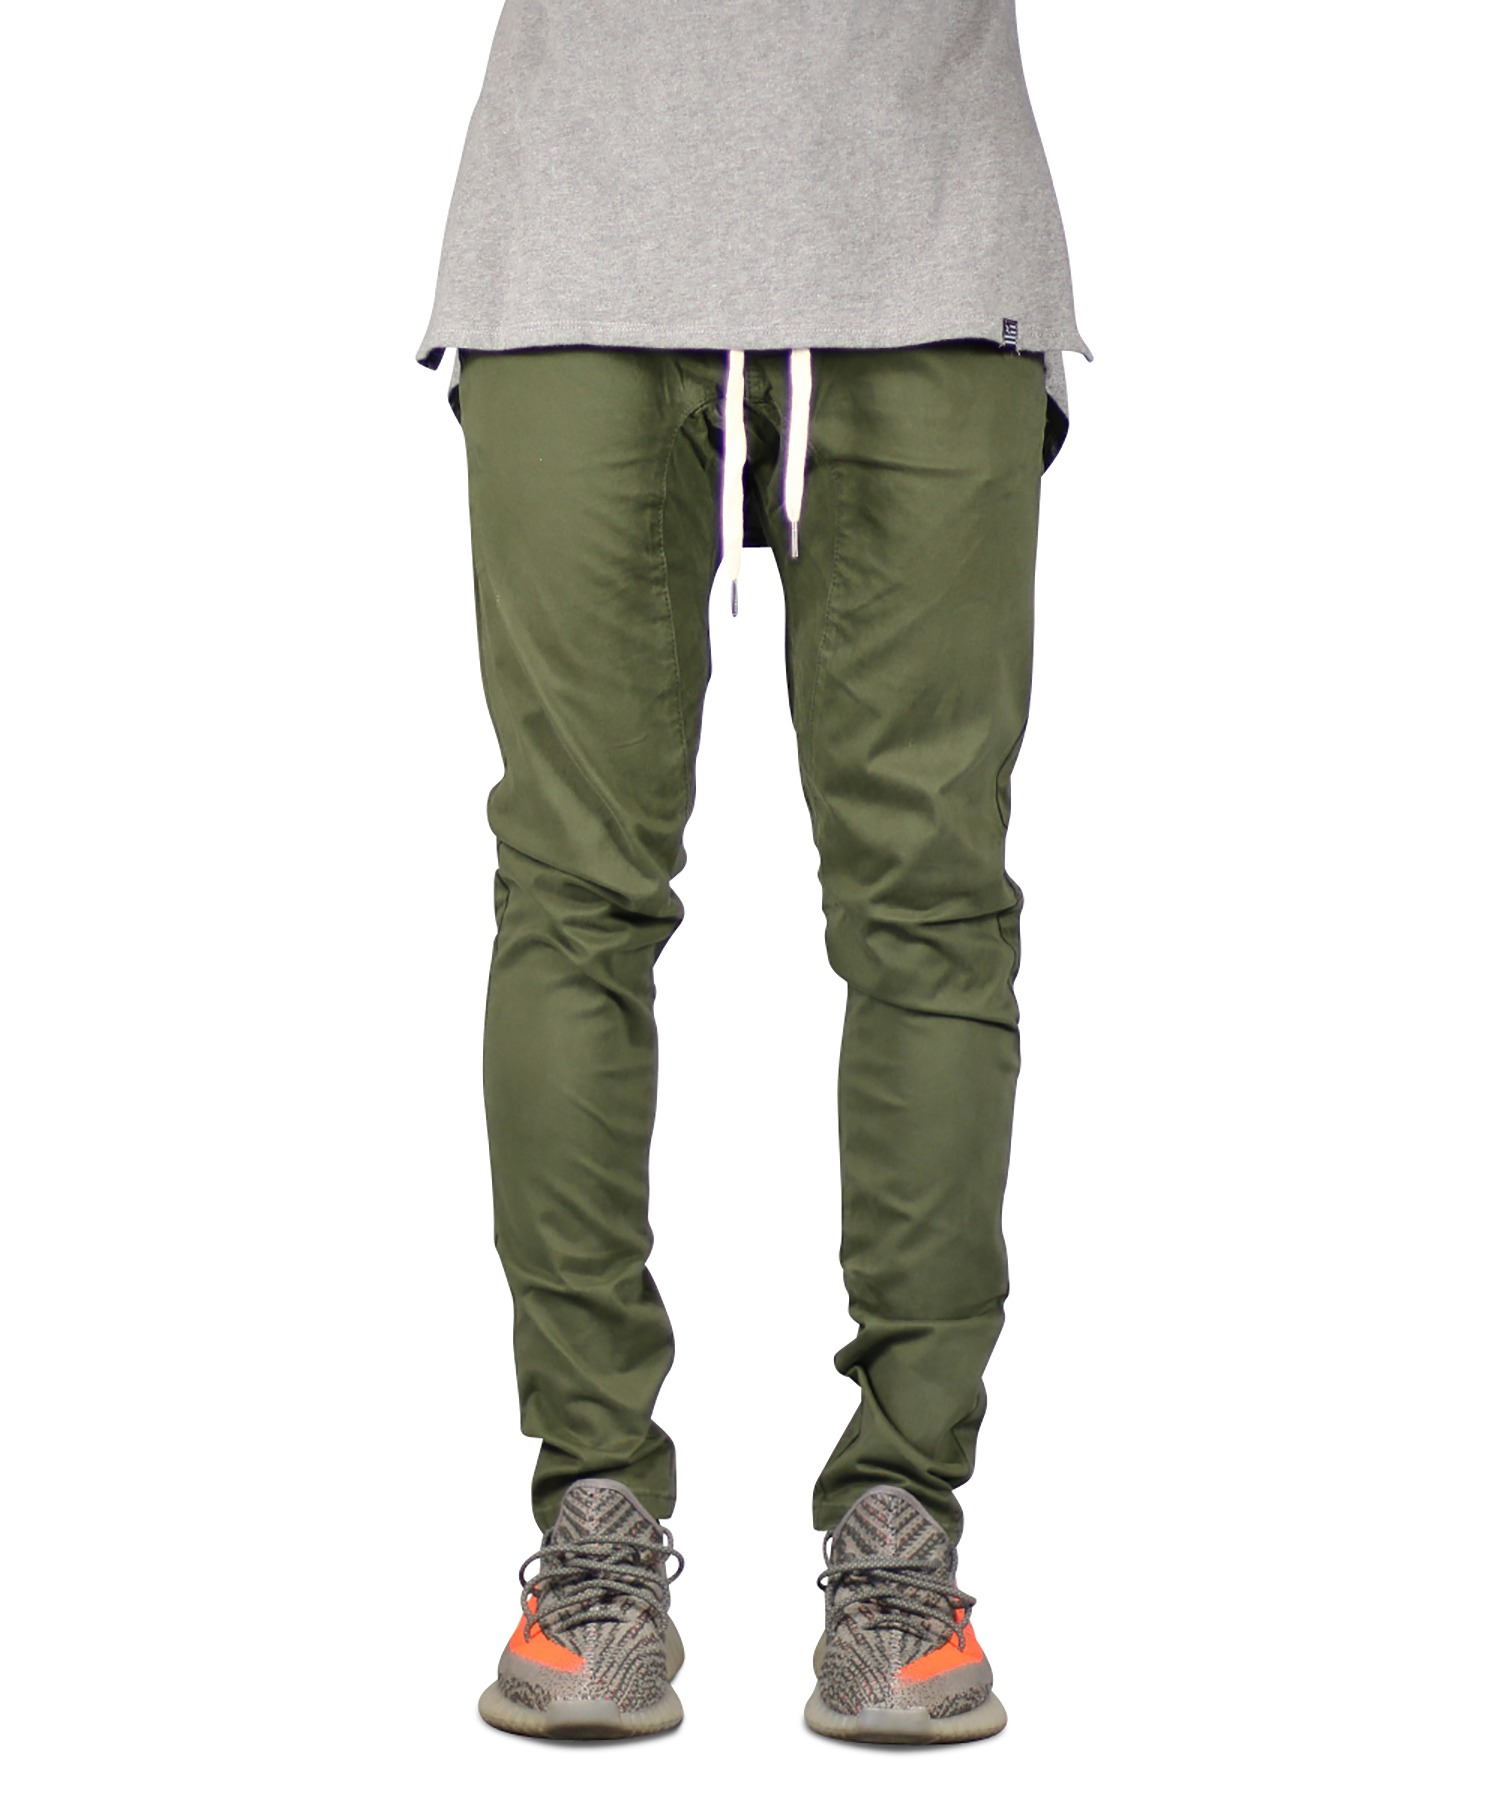 Olive Drop Crotch Pant